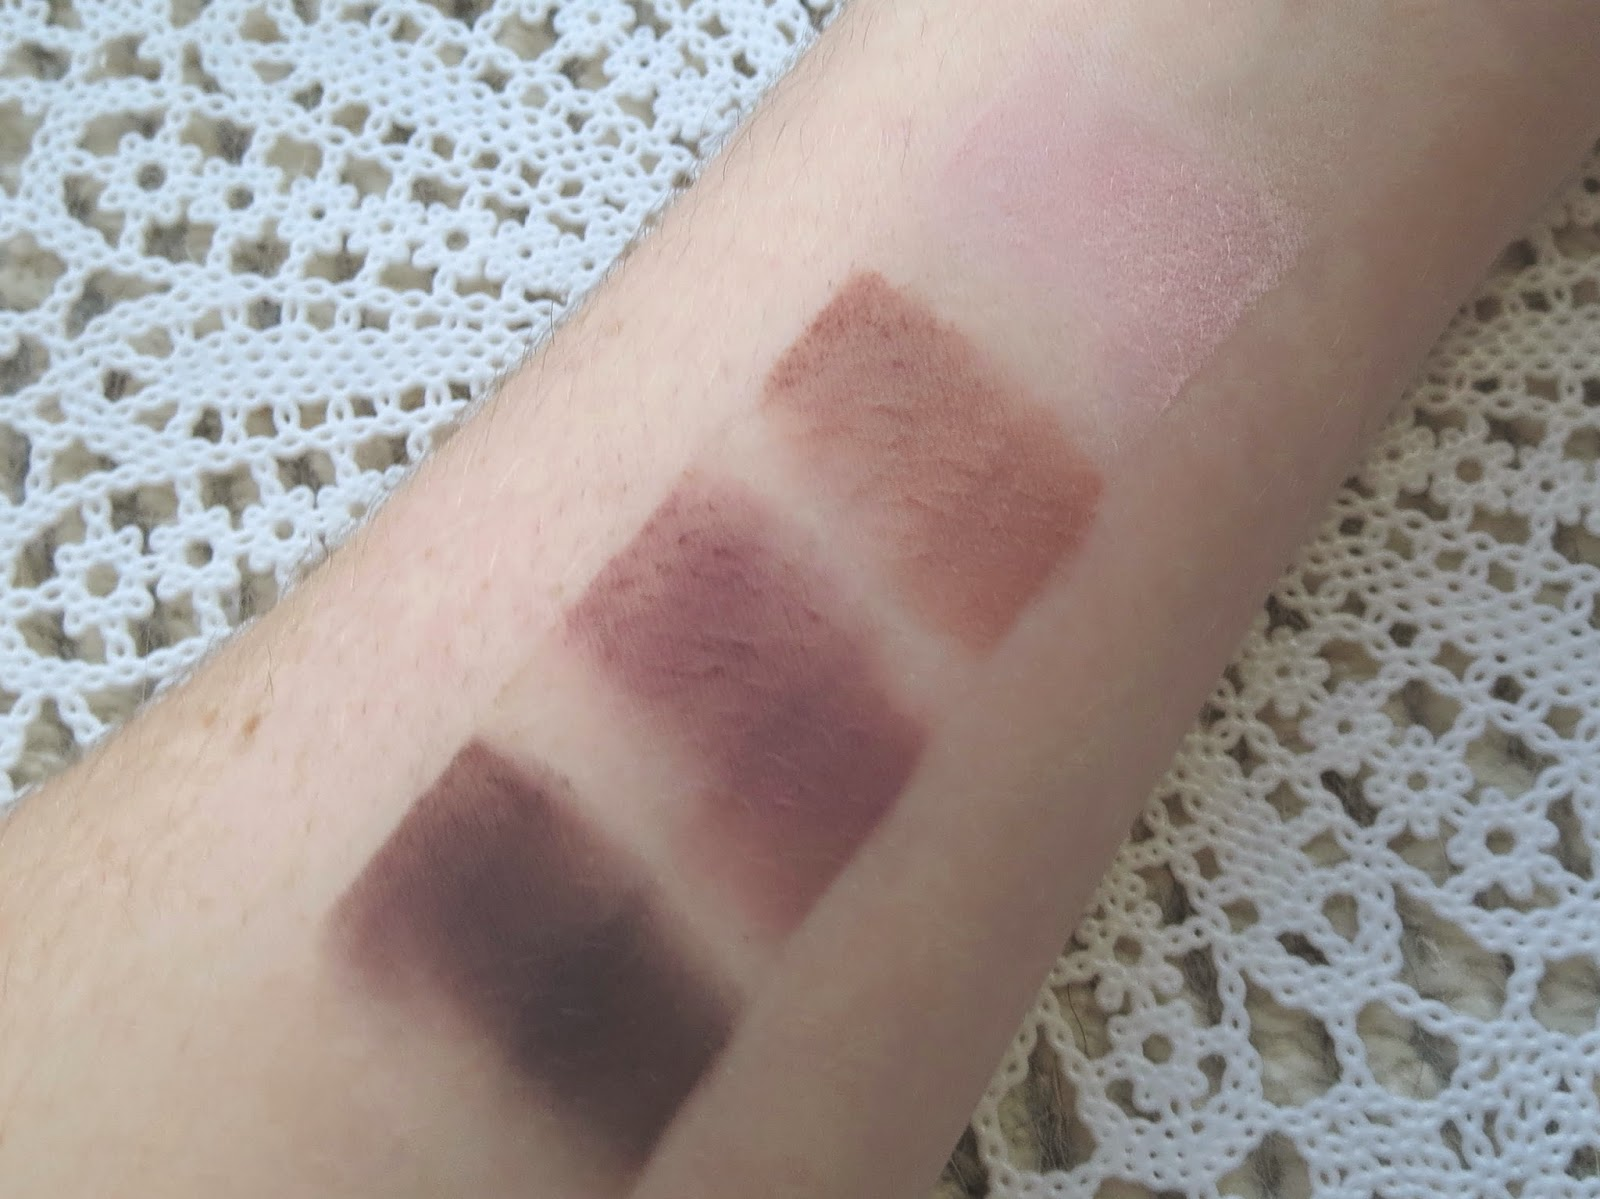 a picture of Tartelette palette swatch : Bombshell, best friend, natural beauty, caregiver